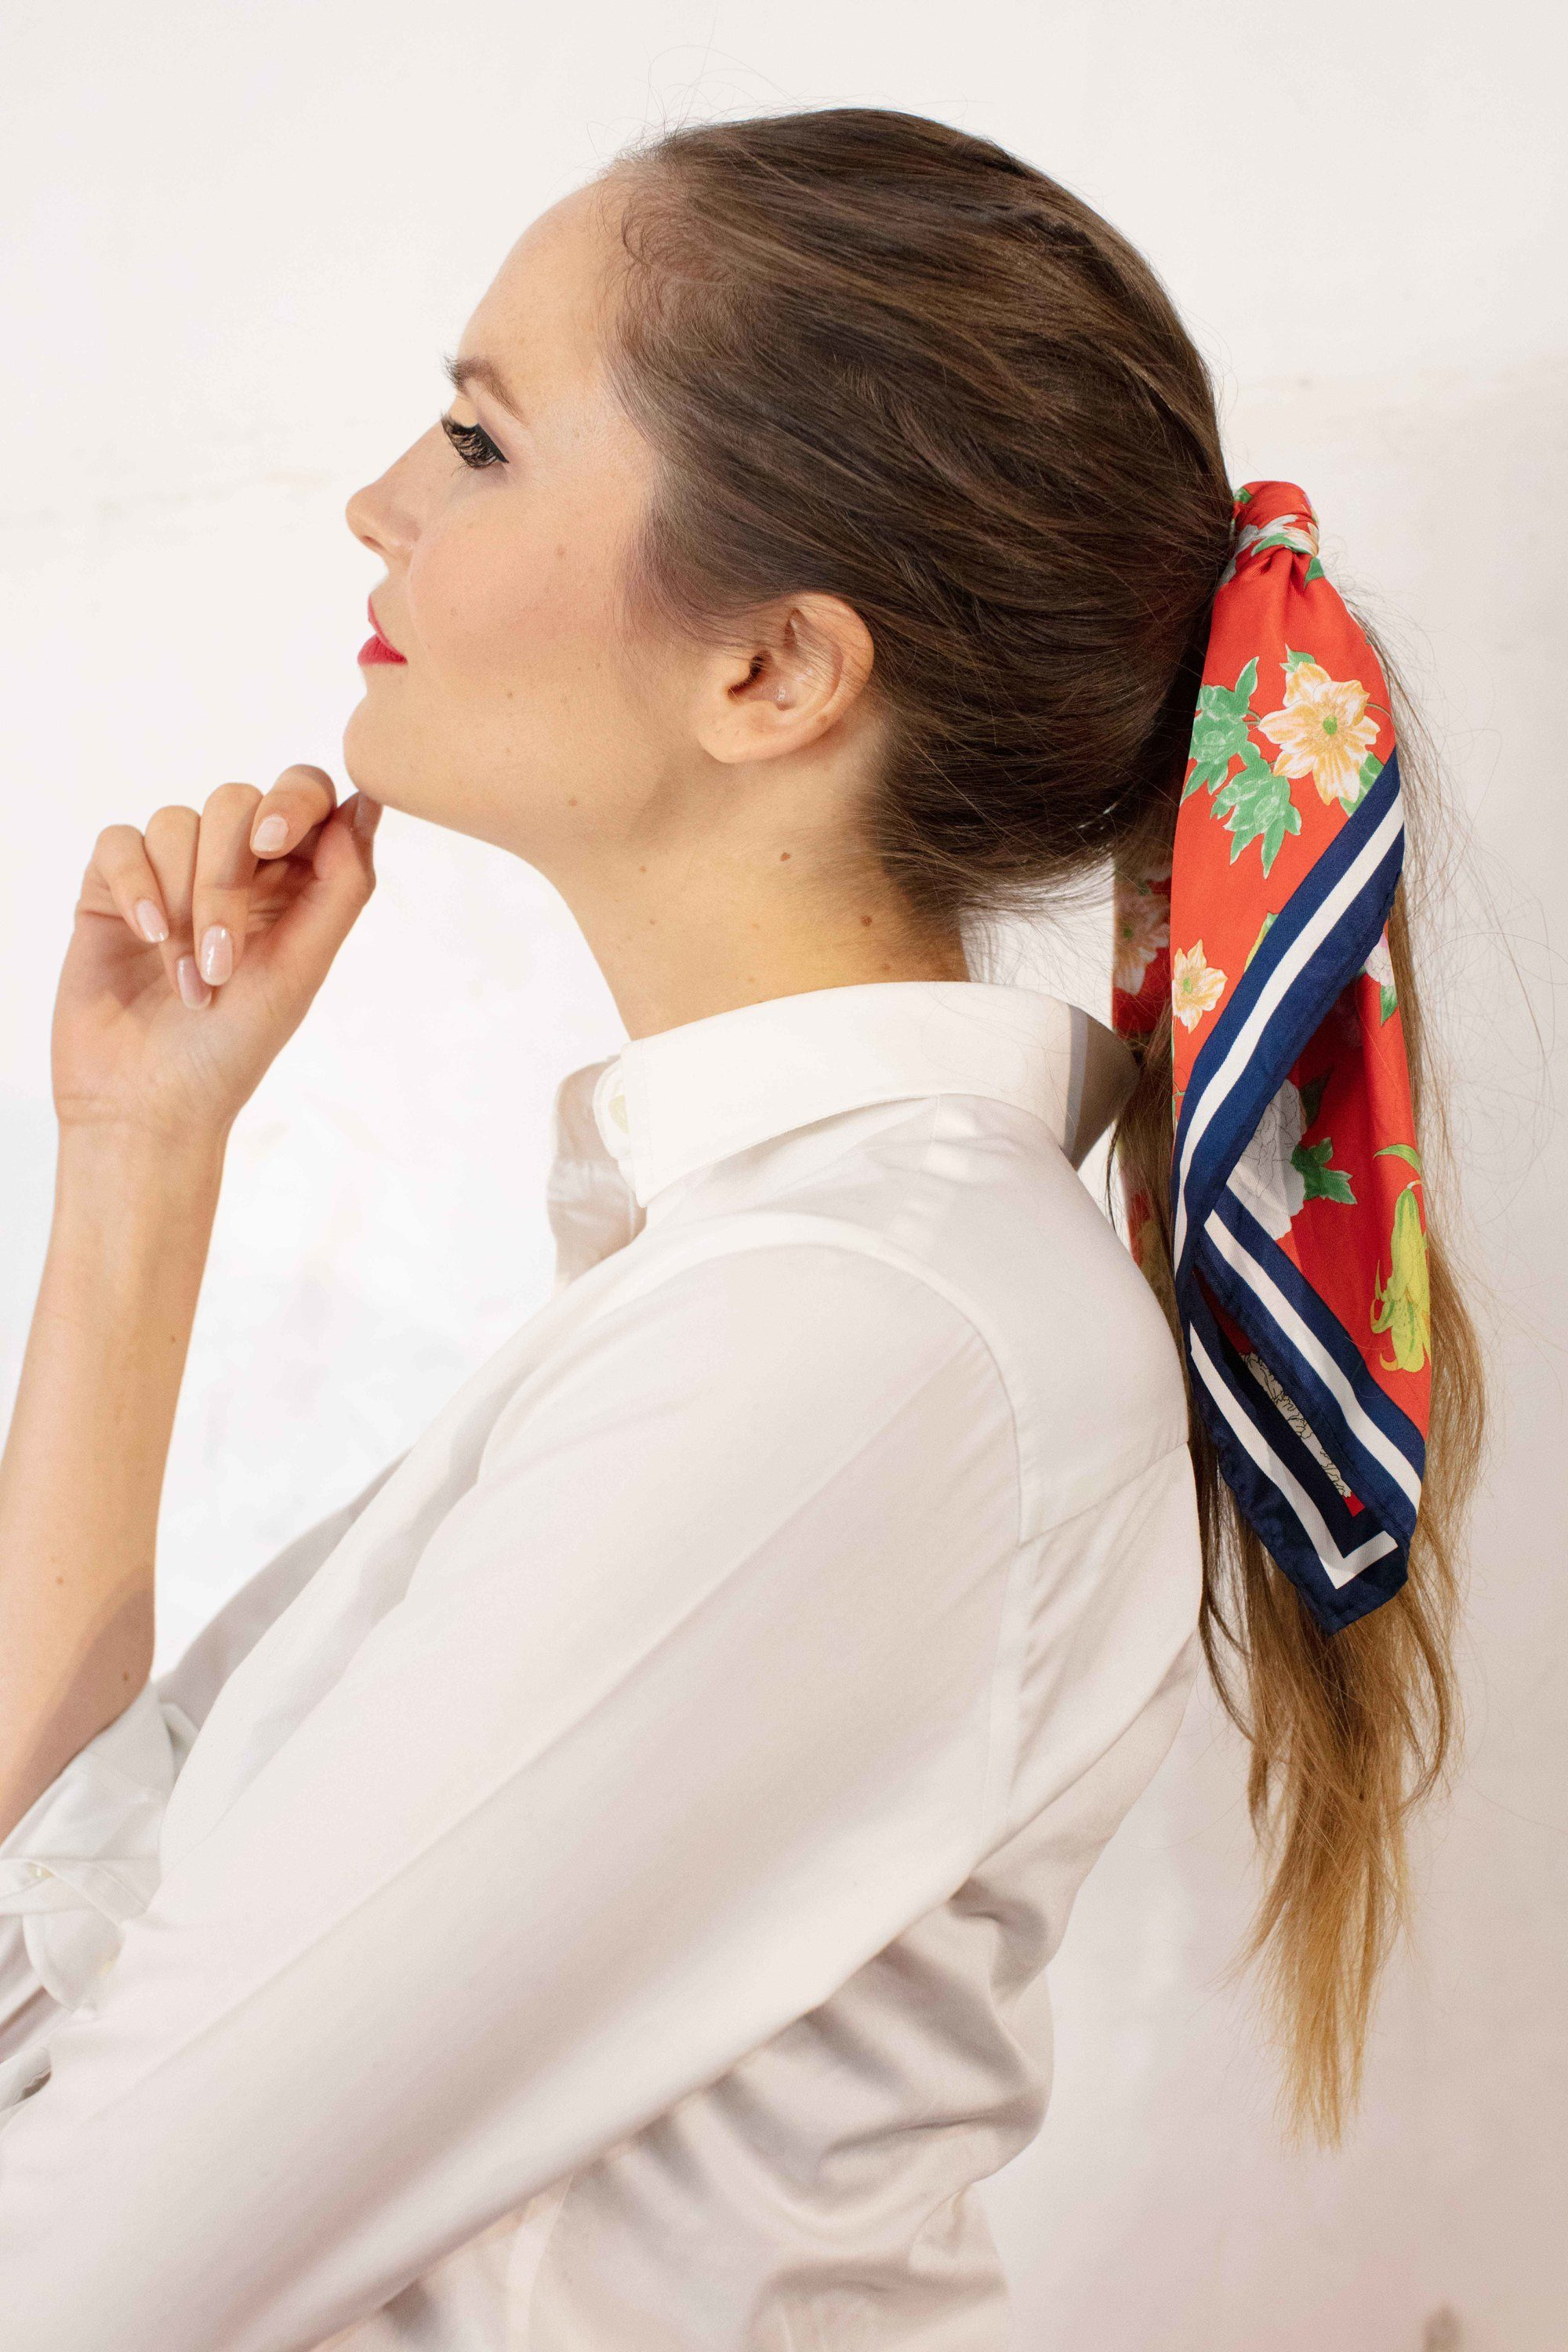 Vintage updo hairstyles: Side view of a brunette woman with her hair in a ponytail with a vintage scarf